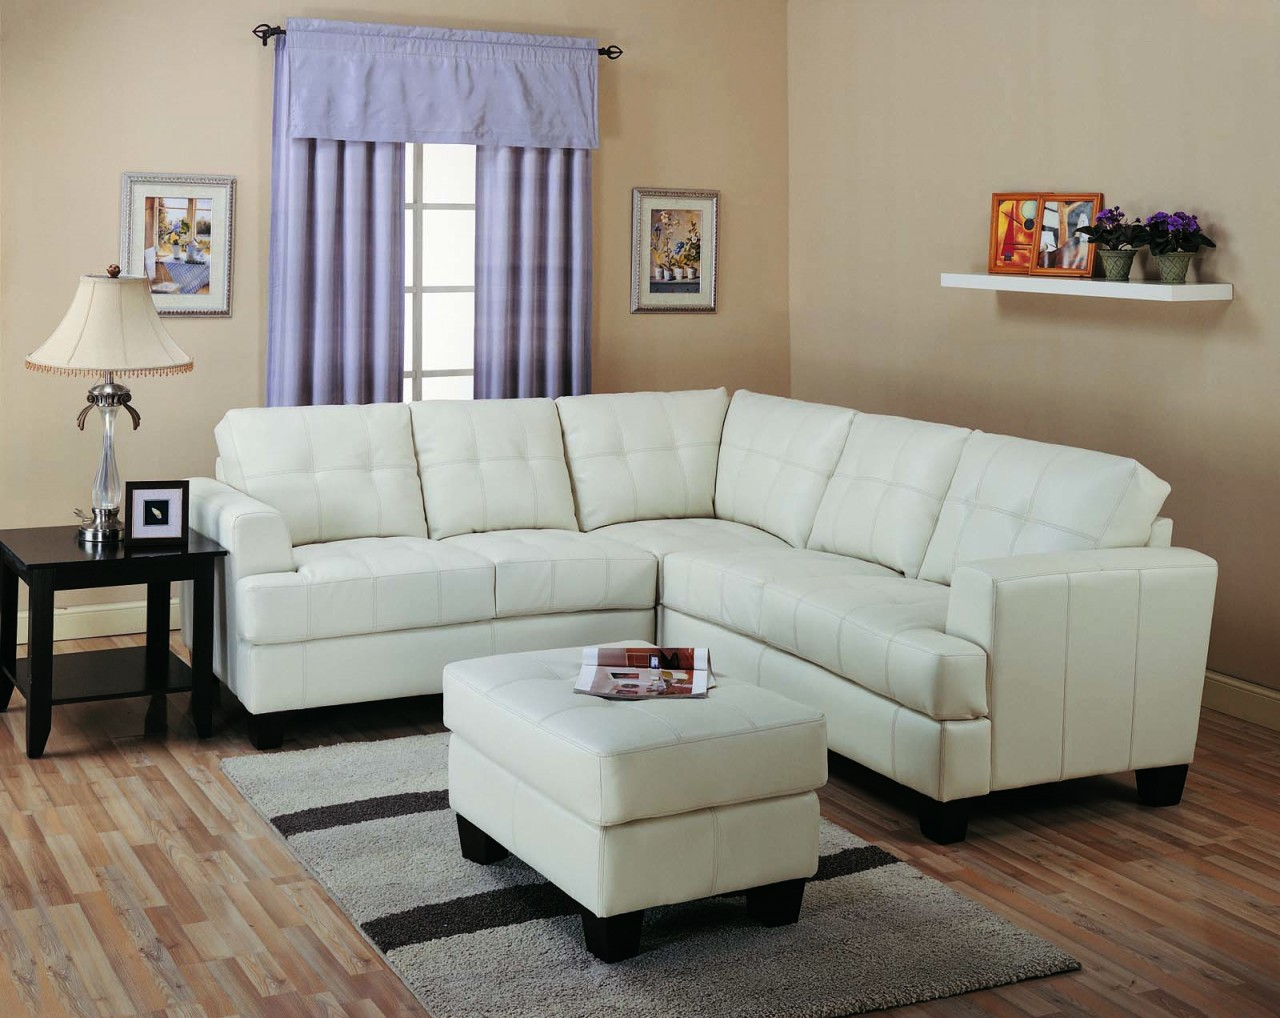 Types of best small sectional couches for small living Sofas for small living rooms